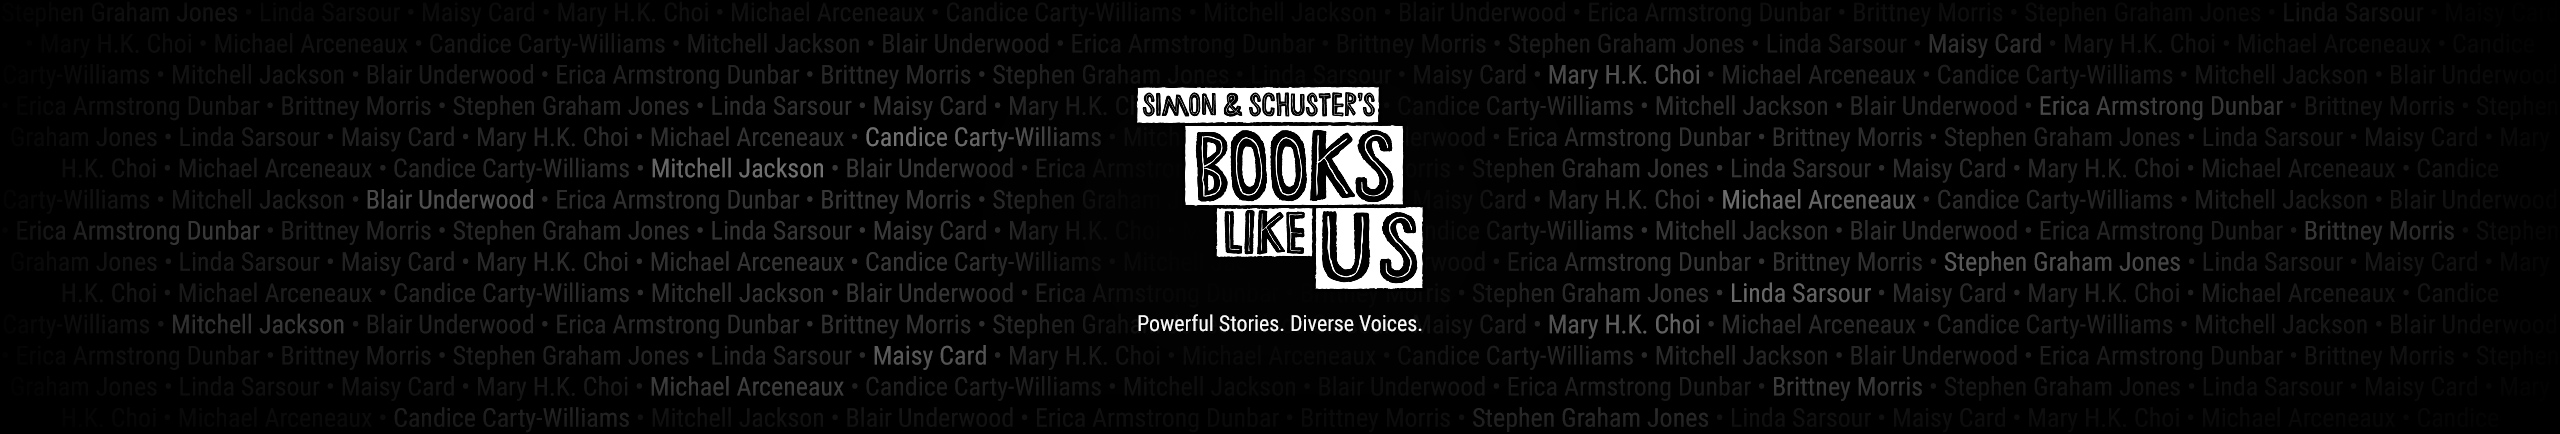 Books Like Us